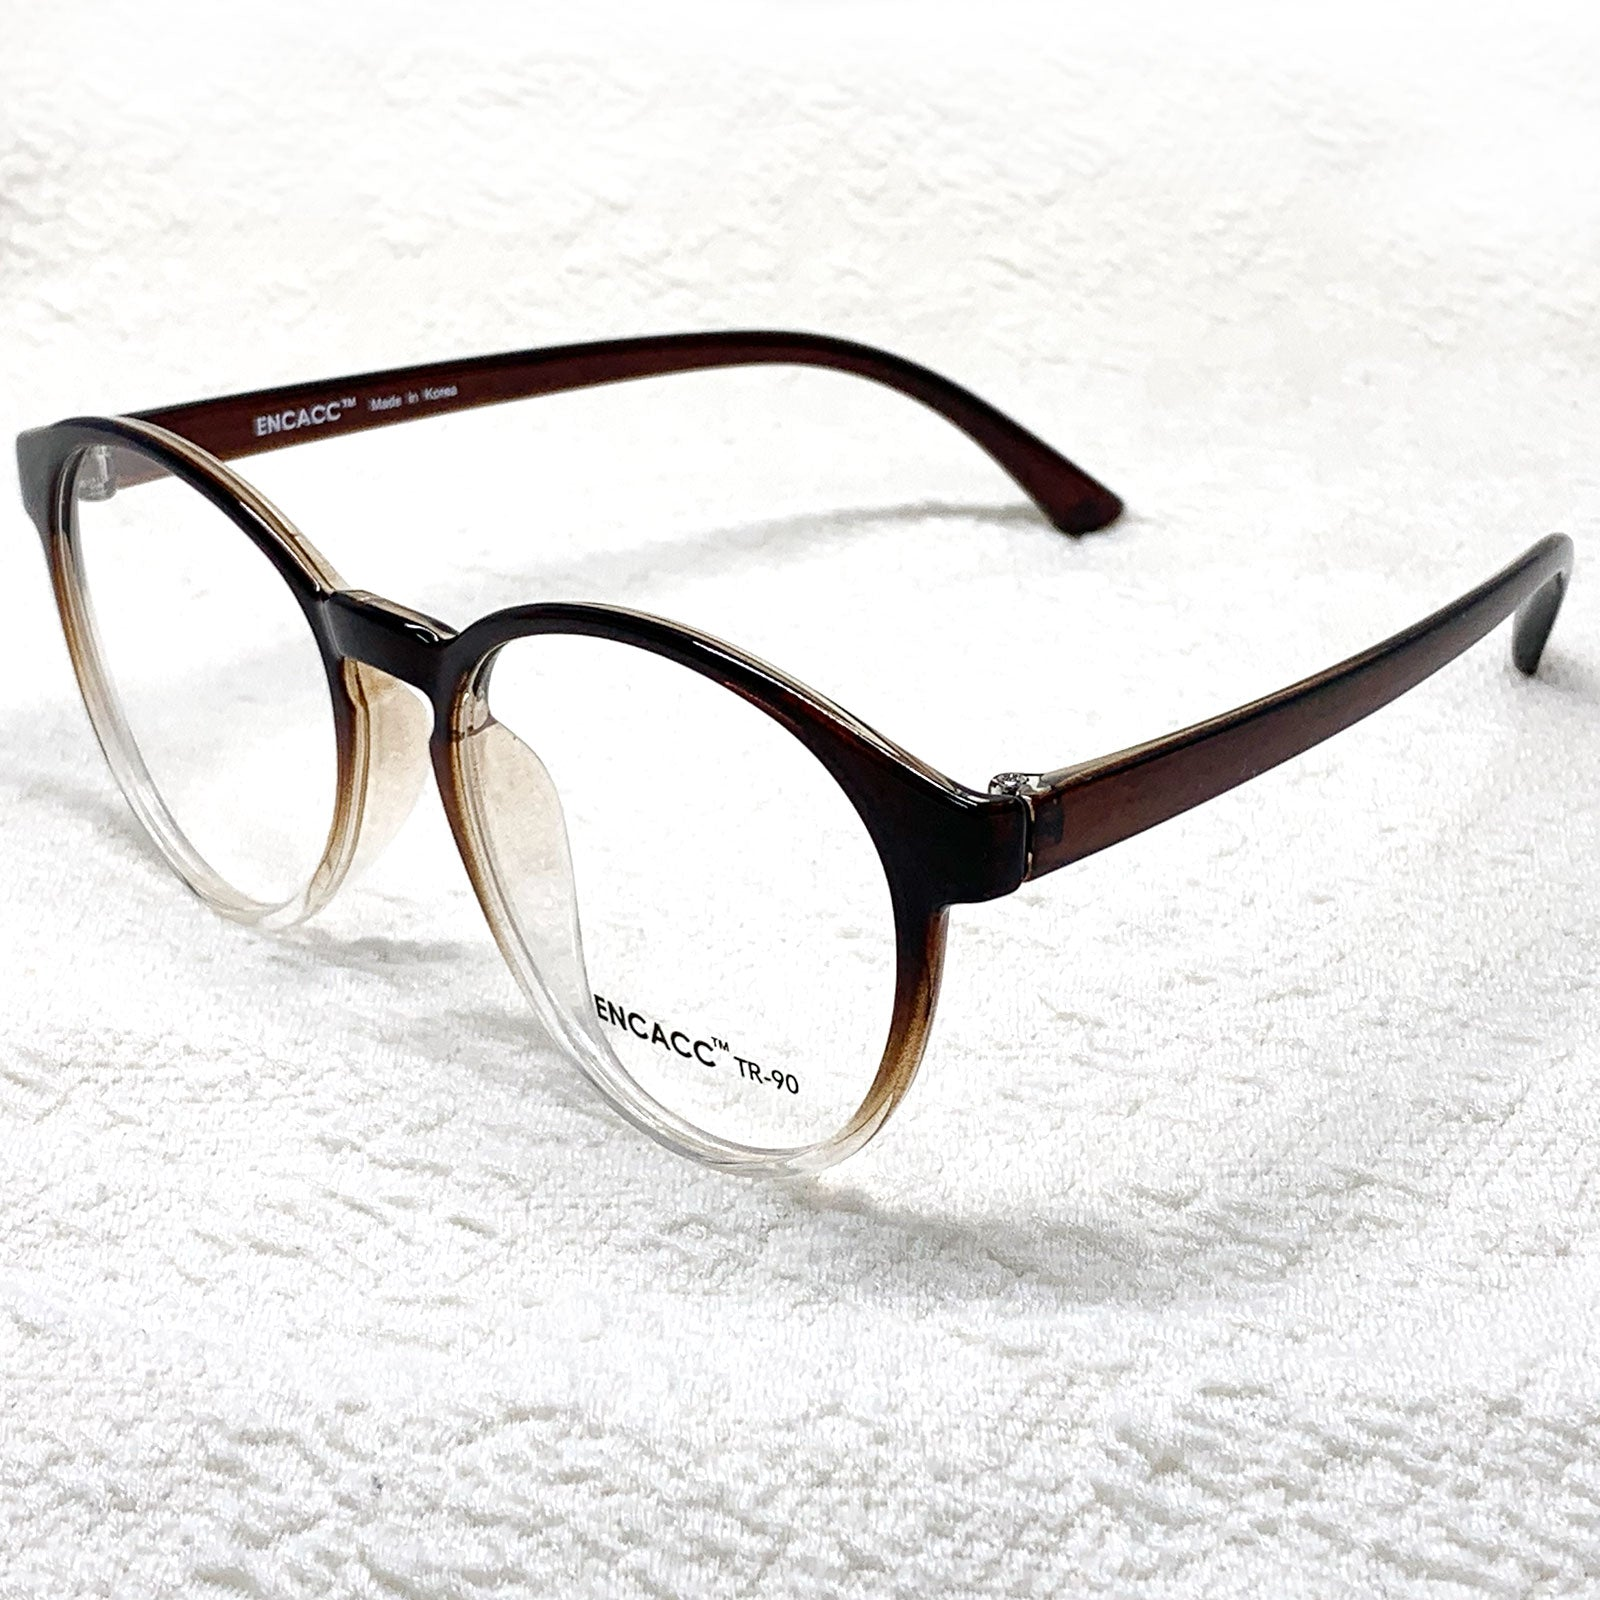 Oversize Big Round Eye Glasses Horn Rimmed Eye wear Frame TR90 Non Prescription - ENCACC